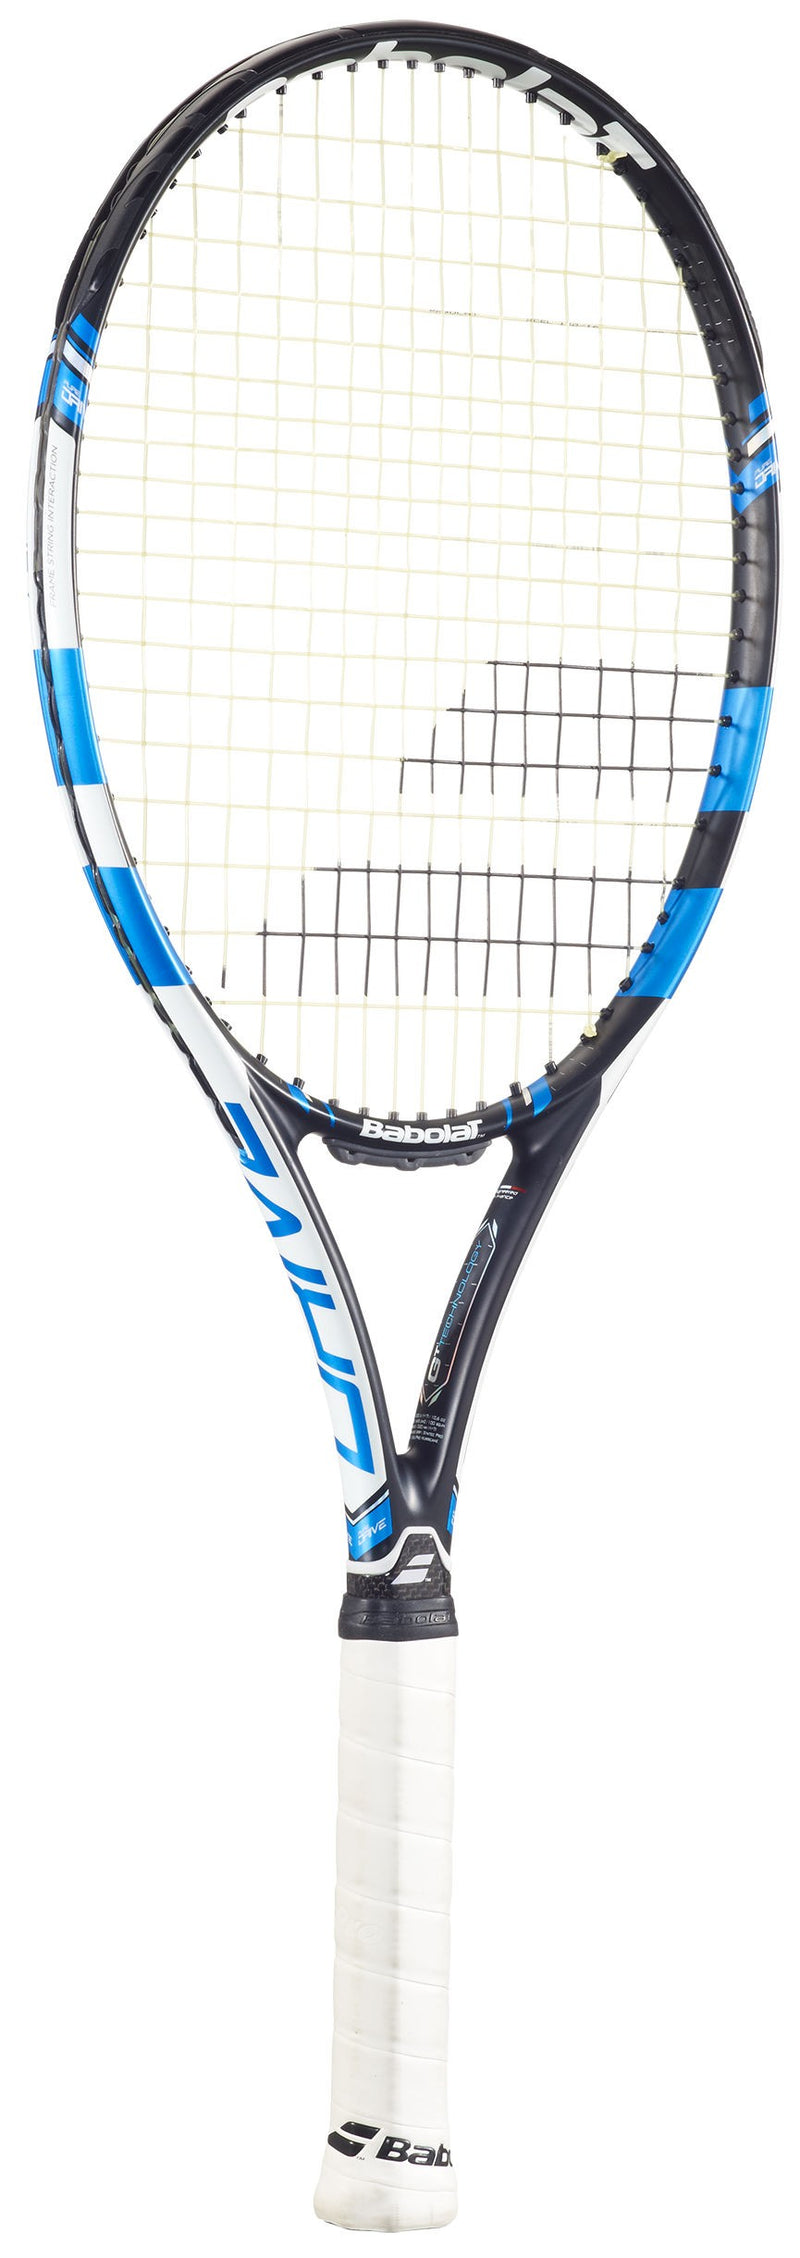 A Review of the Babolat Pure Drive Tennis Racquet